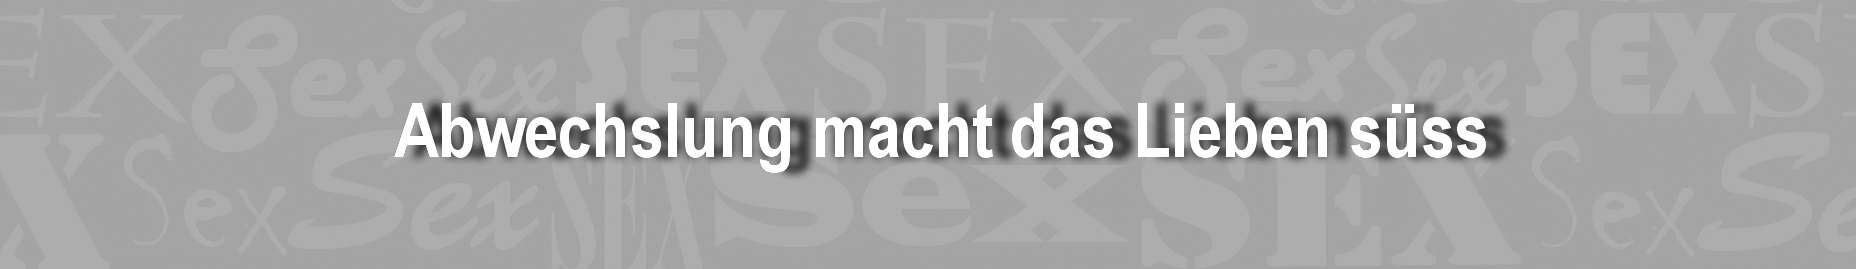 Sex_Mosaik_showcase_mit_Text_1